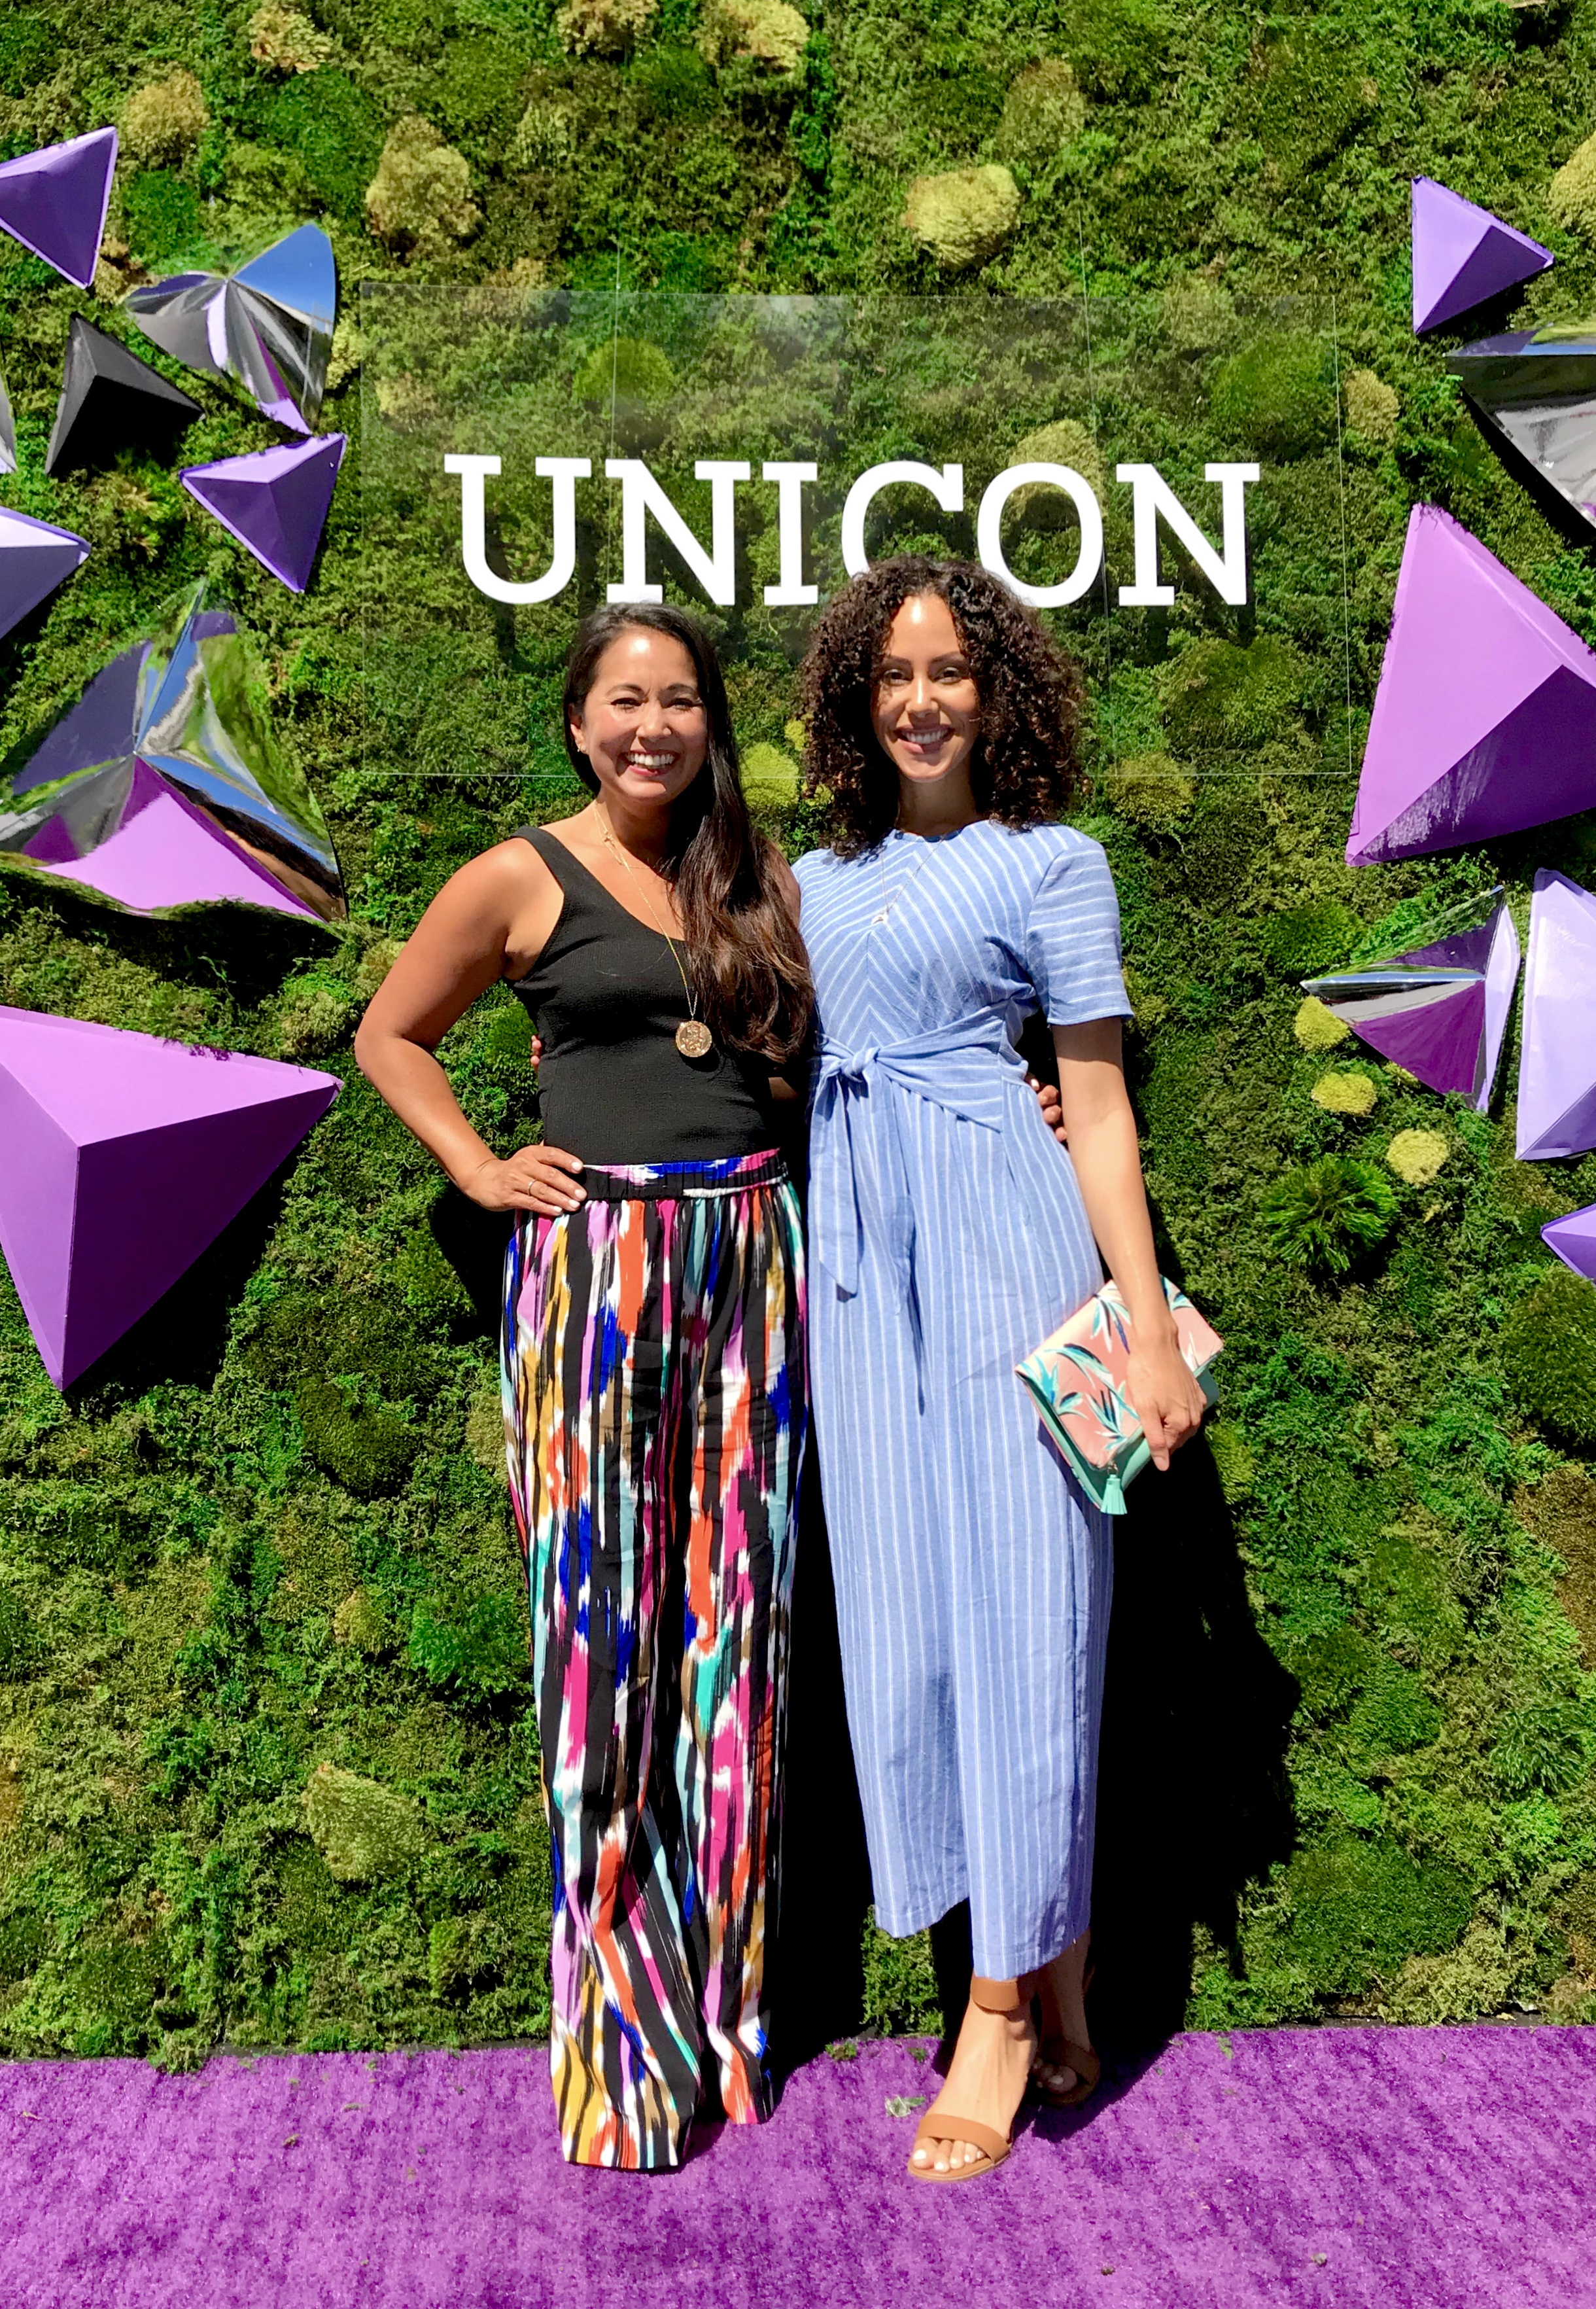 Two women dressed in colorful unicorn inpsired clothing standing in front of the Unicon backdrop